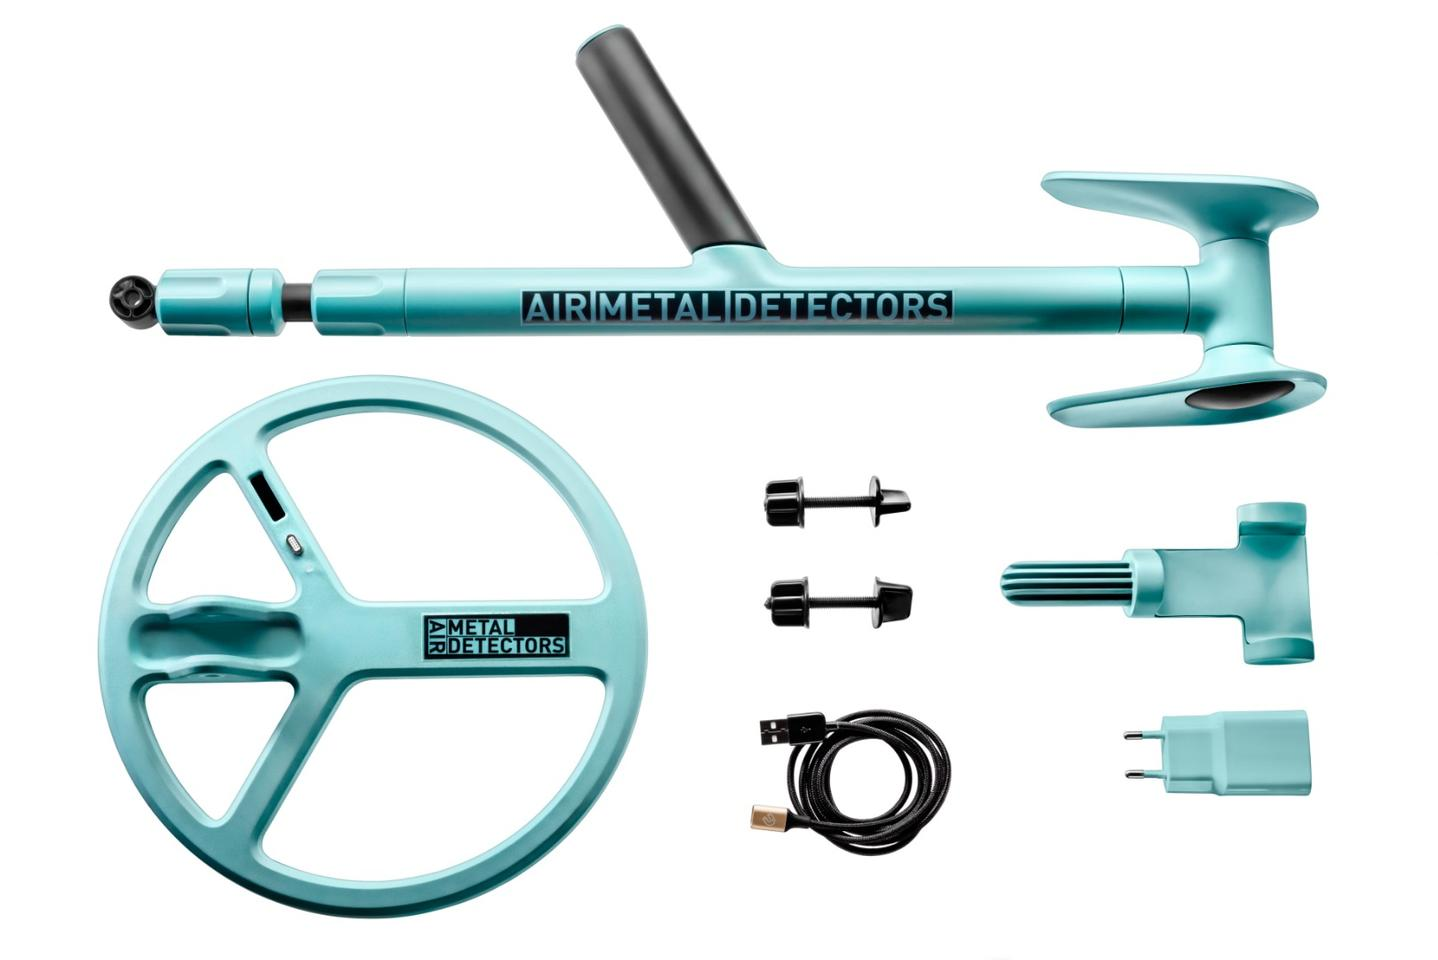 The various components of the Air Metal Detector